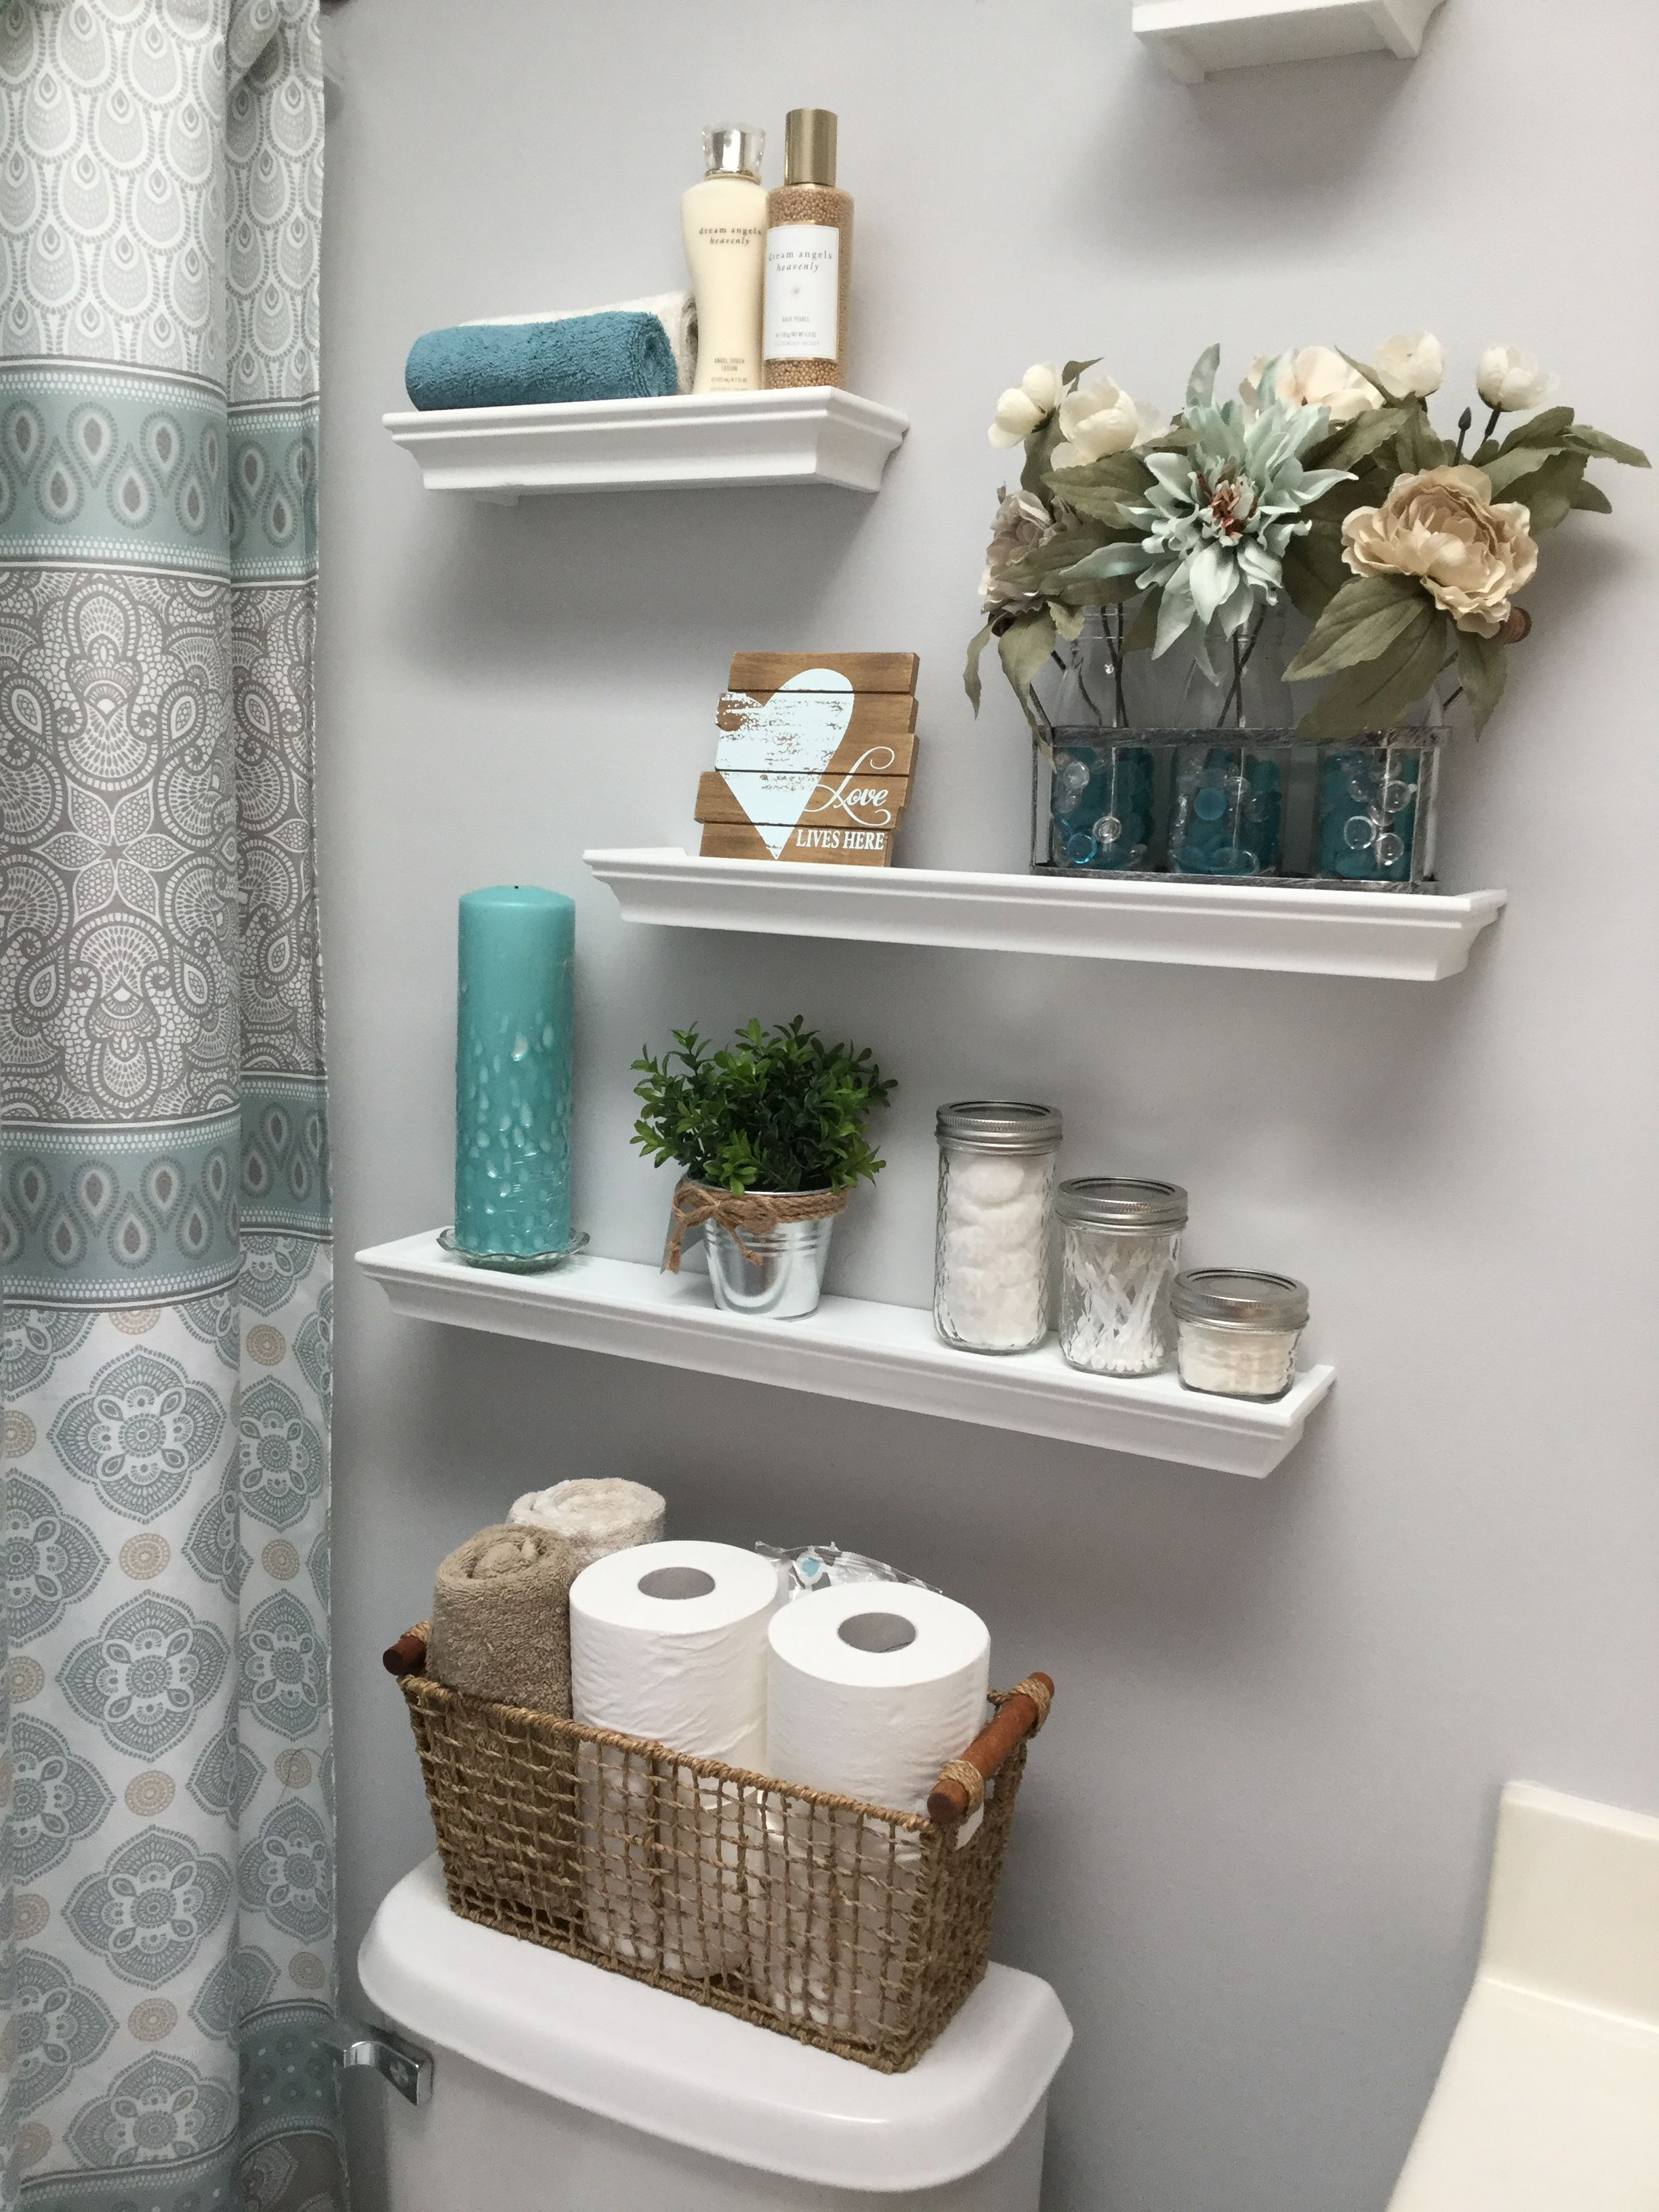 7+ Bathroom Floating Shelves Design to Save Room | Restroom decor ...